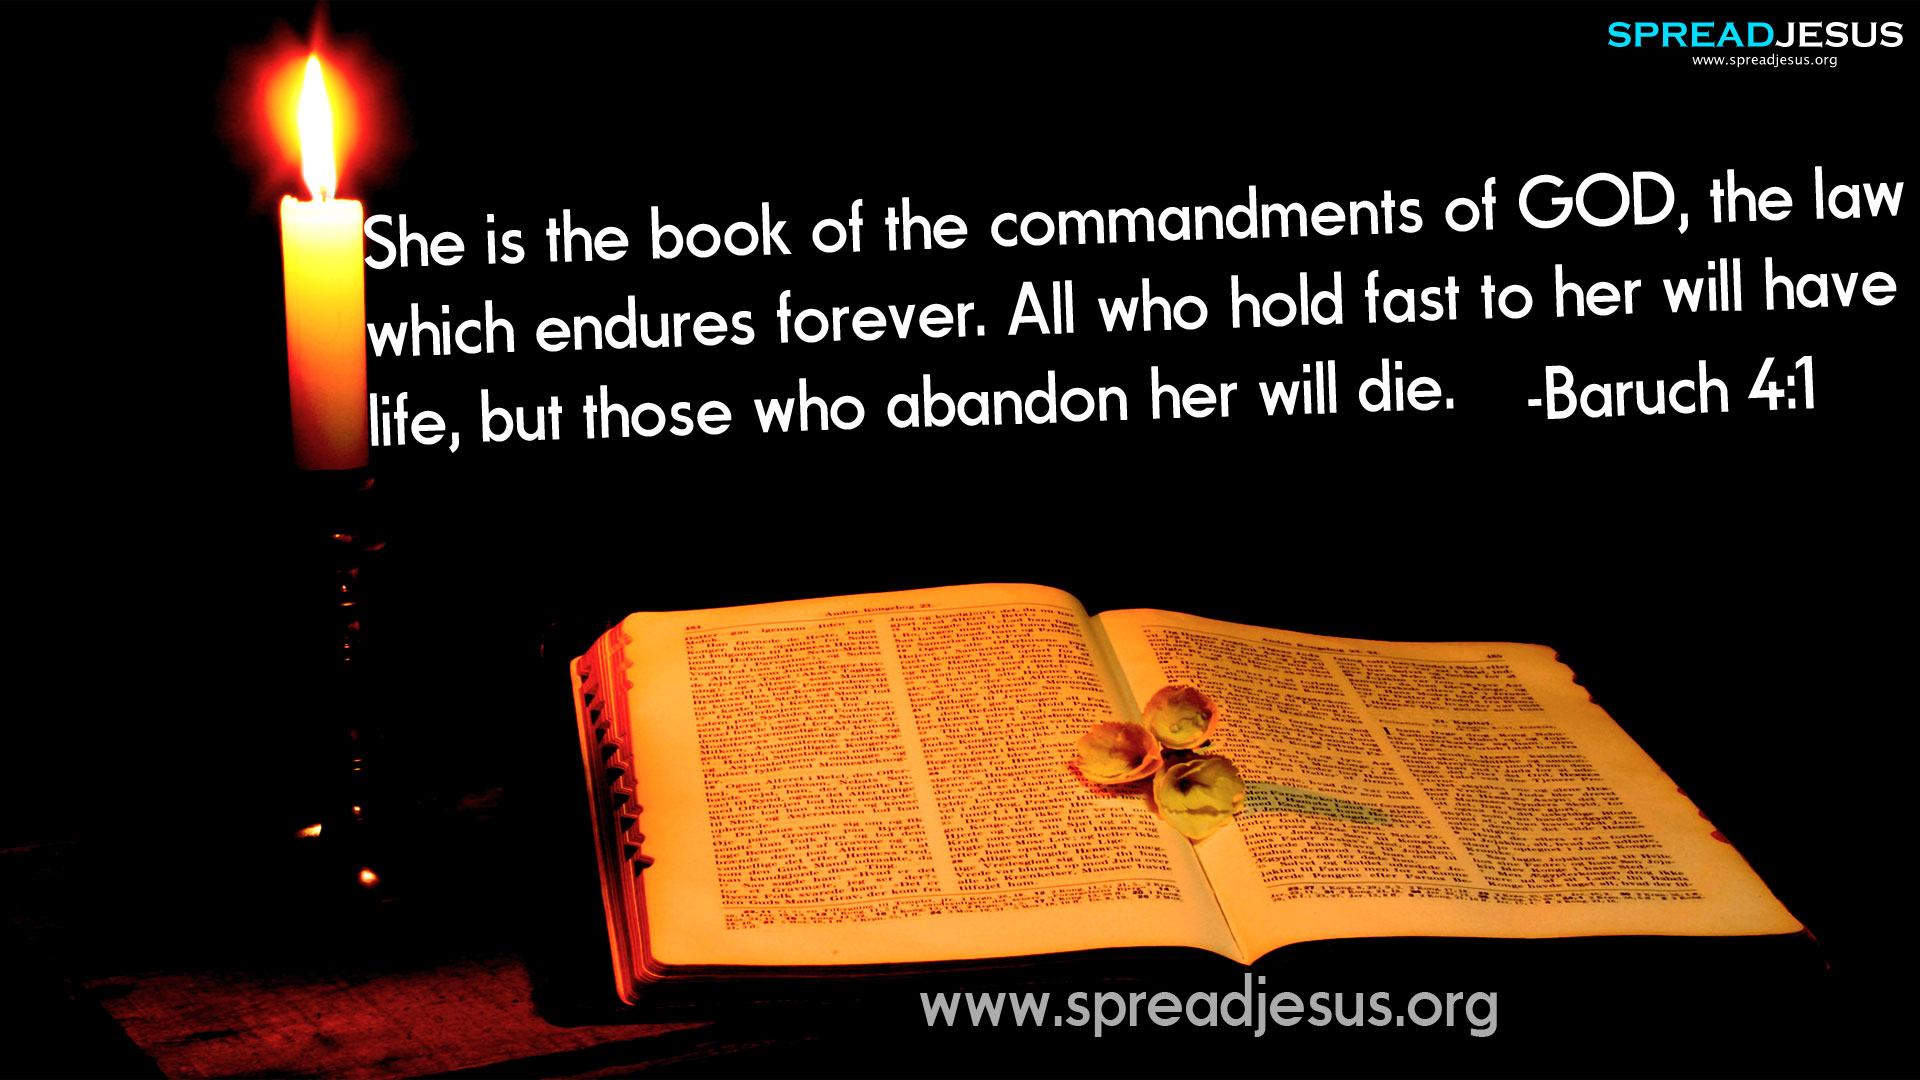 CHRISTIAN HD WALLPAPERS: HOLY BIBLE QUOTES :Baruch 4:1-She is the book of the commandments of GOD, the law which endures forever.All who hold fast to her will have life, but those who abandon her will die. -Baruch 4:1